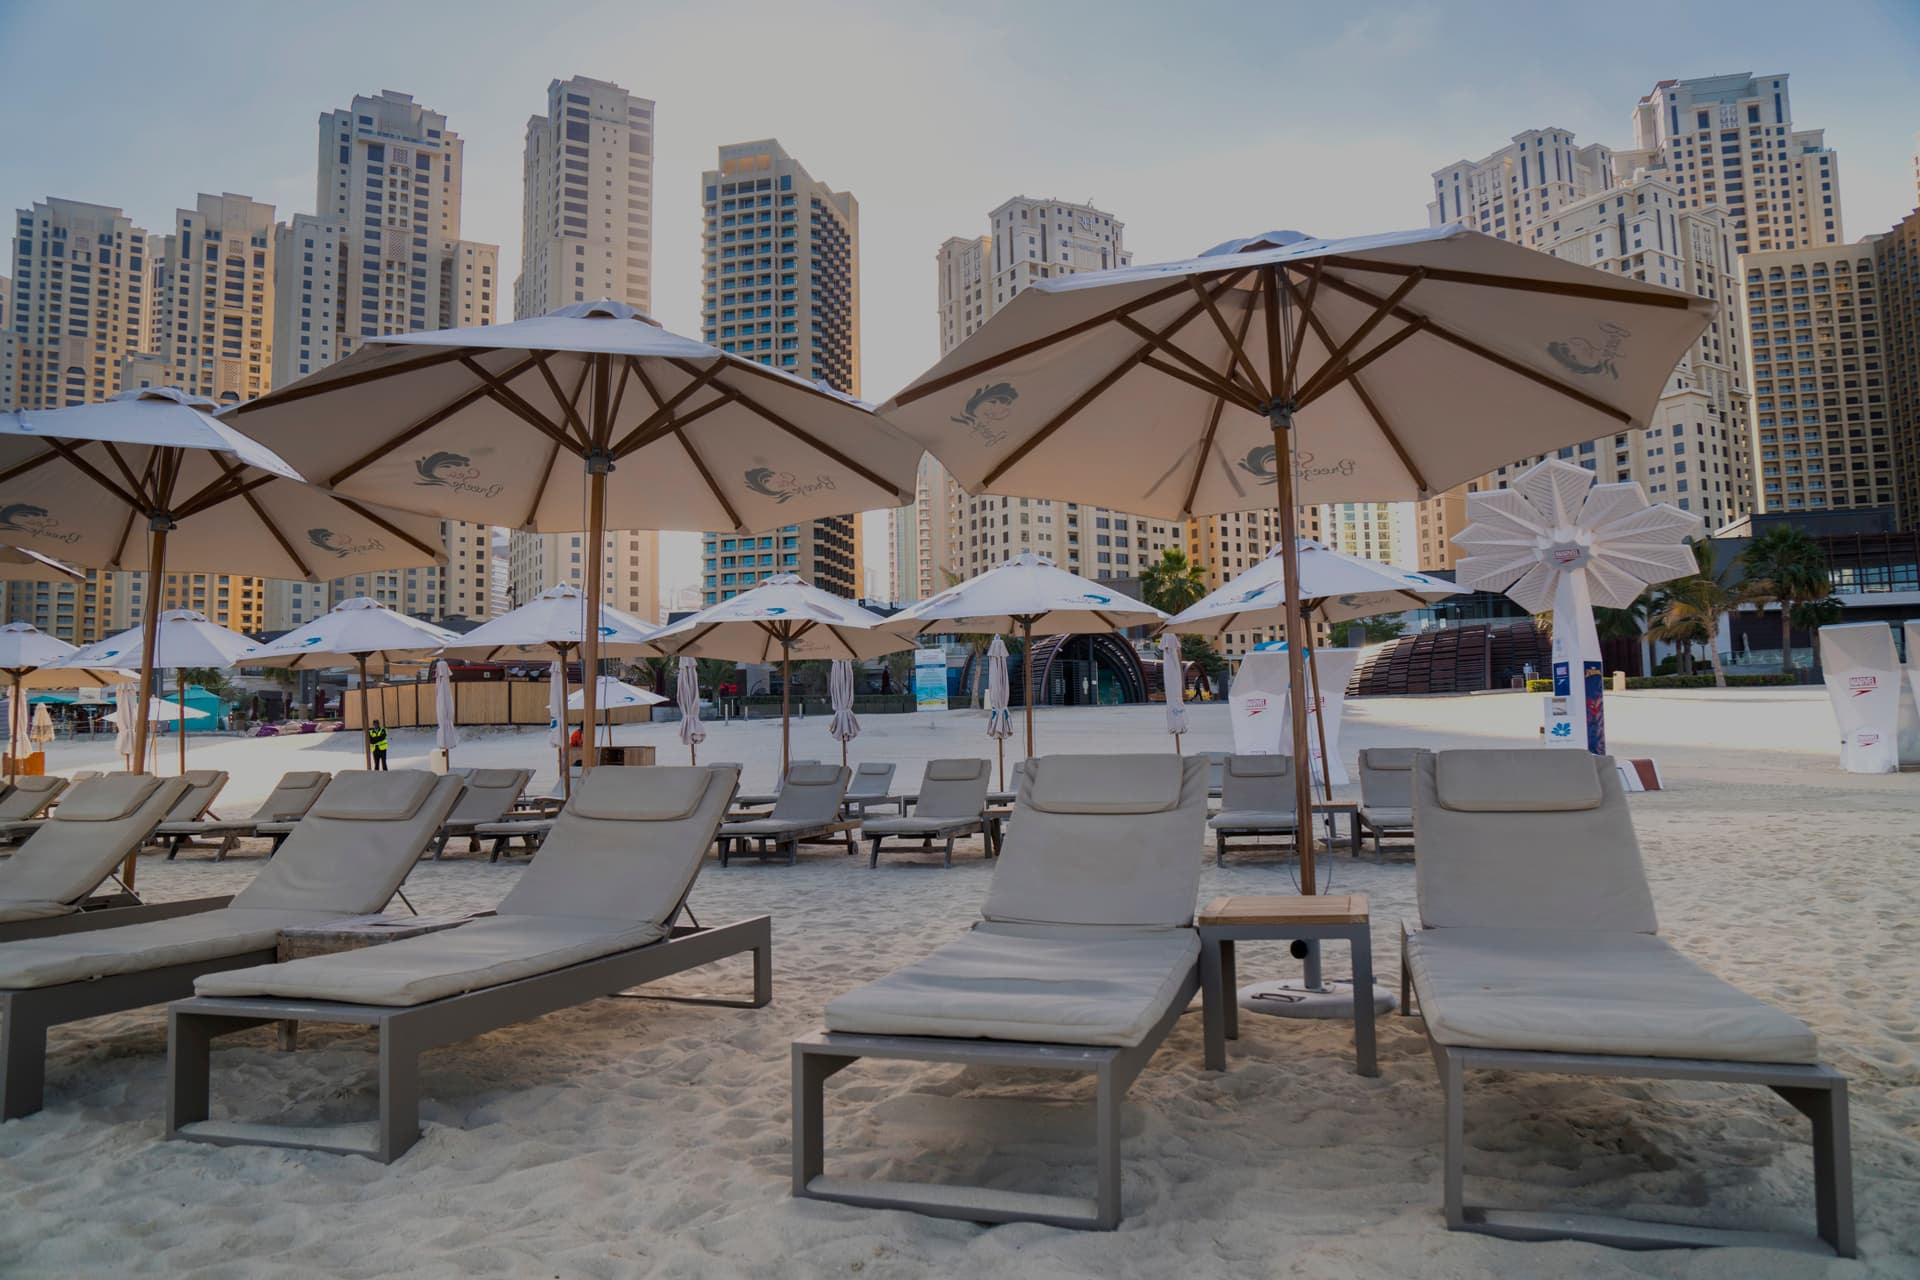 parasols on the beach next to hotels